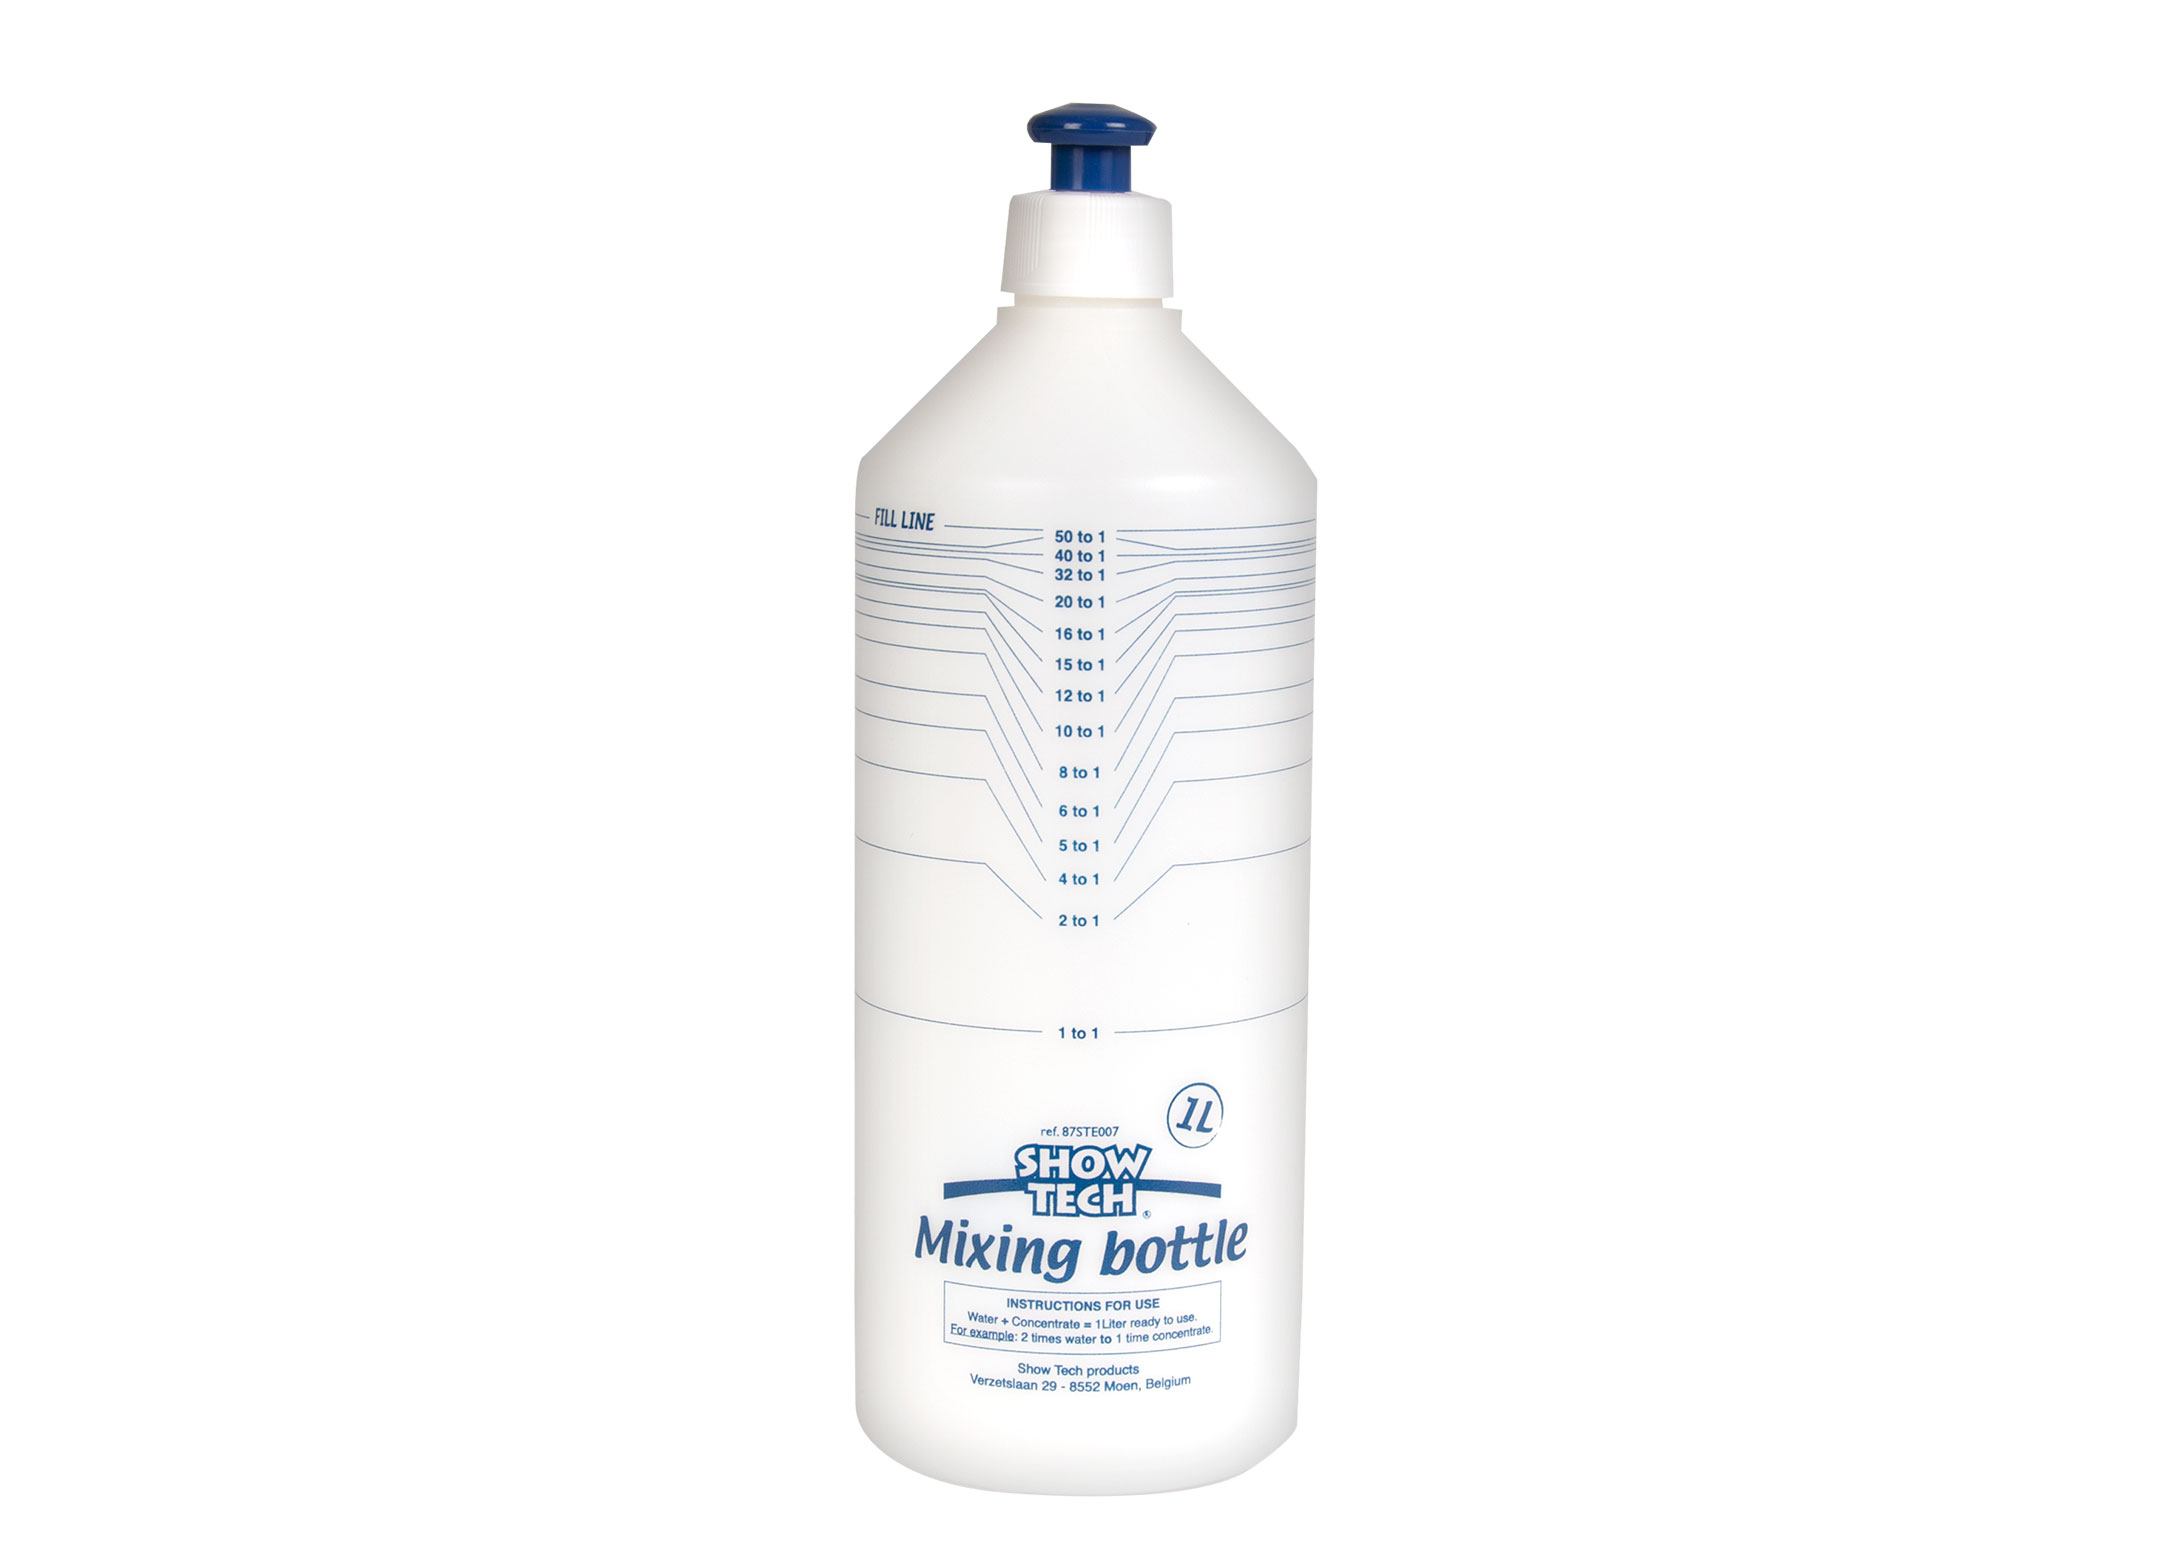 Show Tech Mixing & Dispensing Bottle 1 L Measuring Bottle